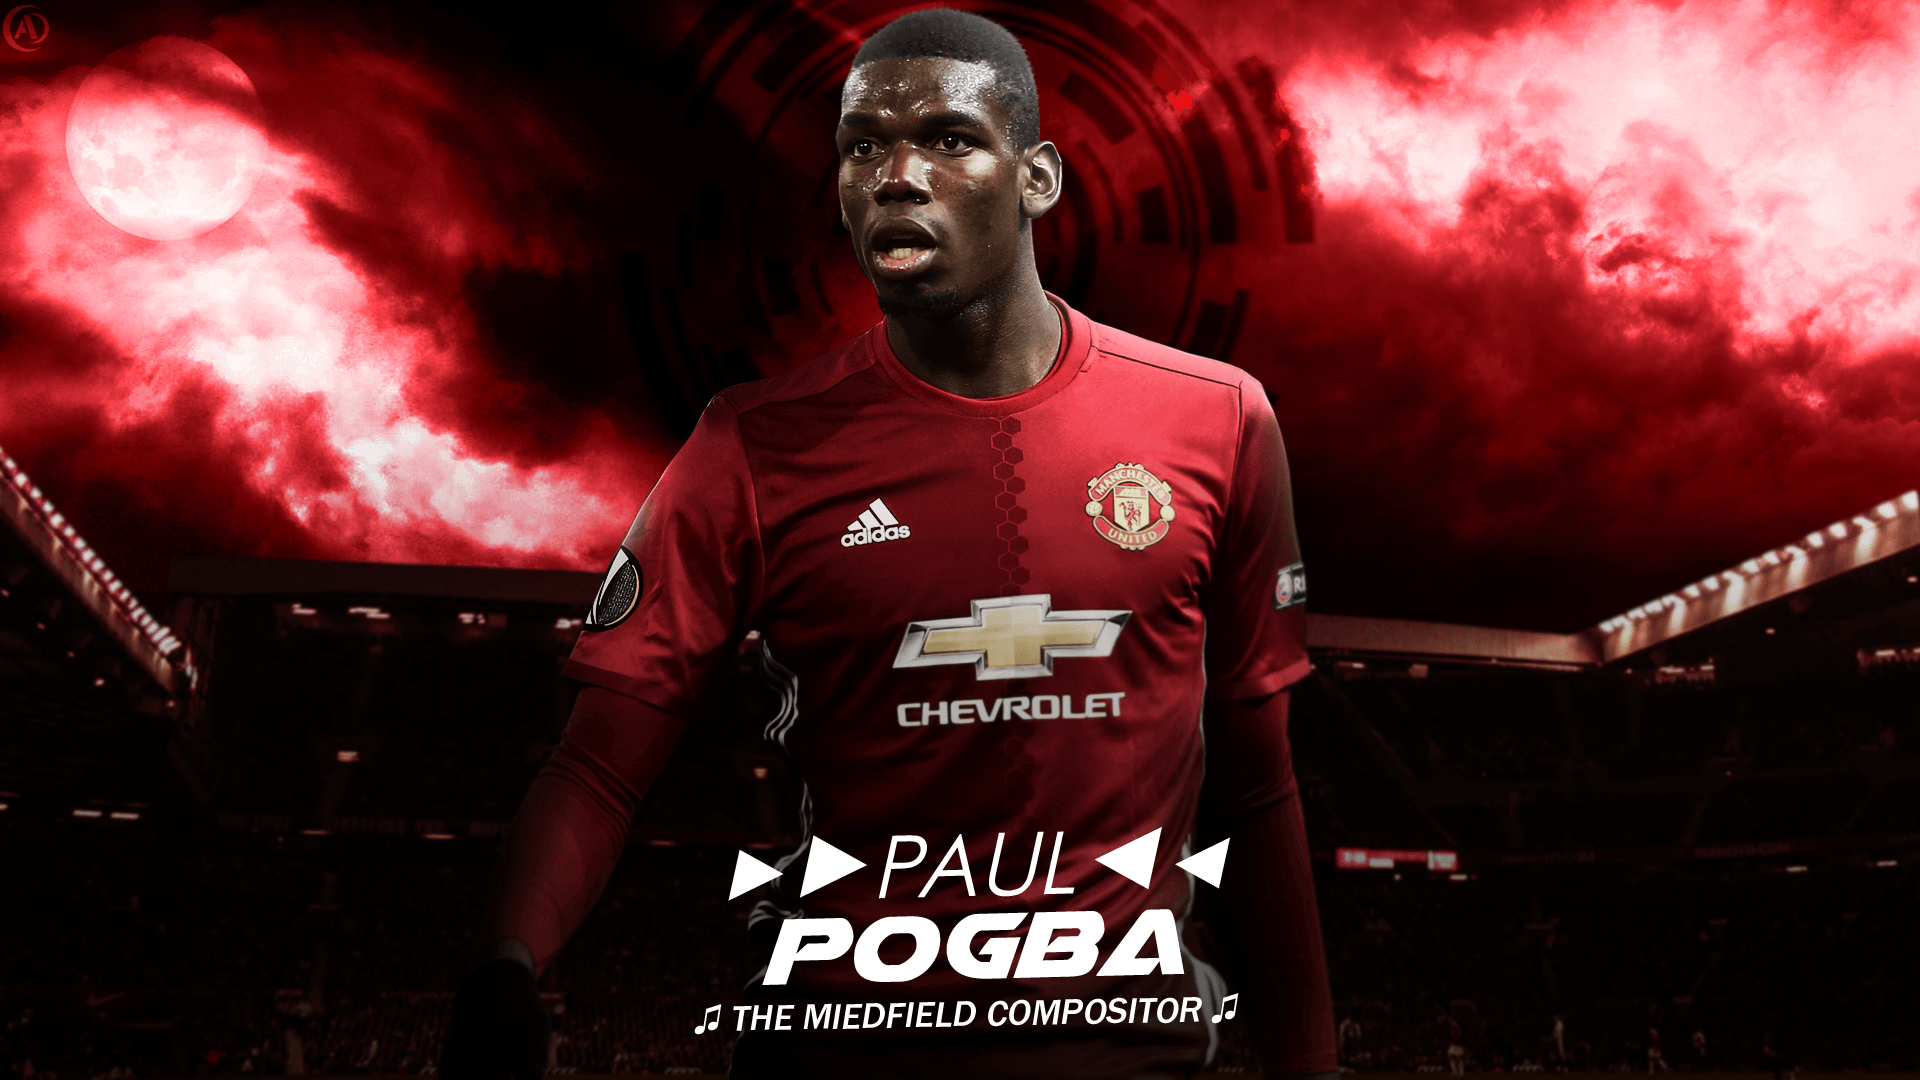 Pogba 2018 wallpapers wallpaper cave - Cool man united wallpapers ...